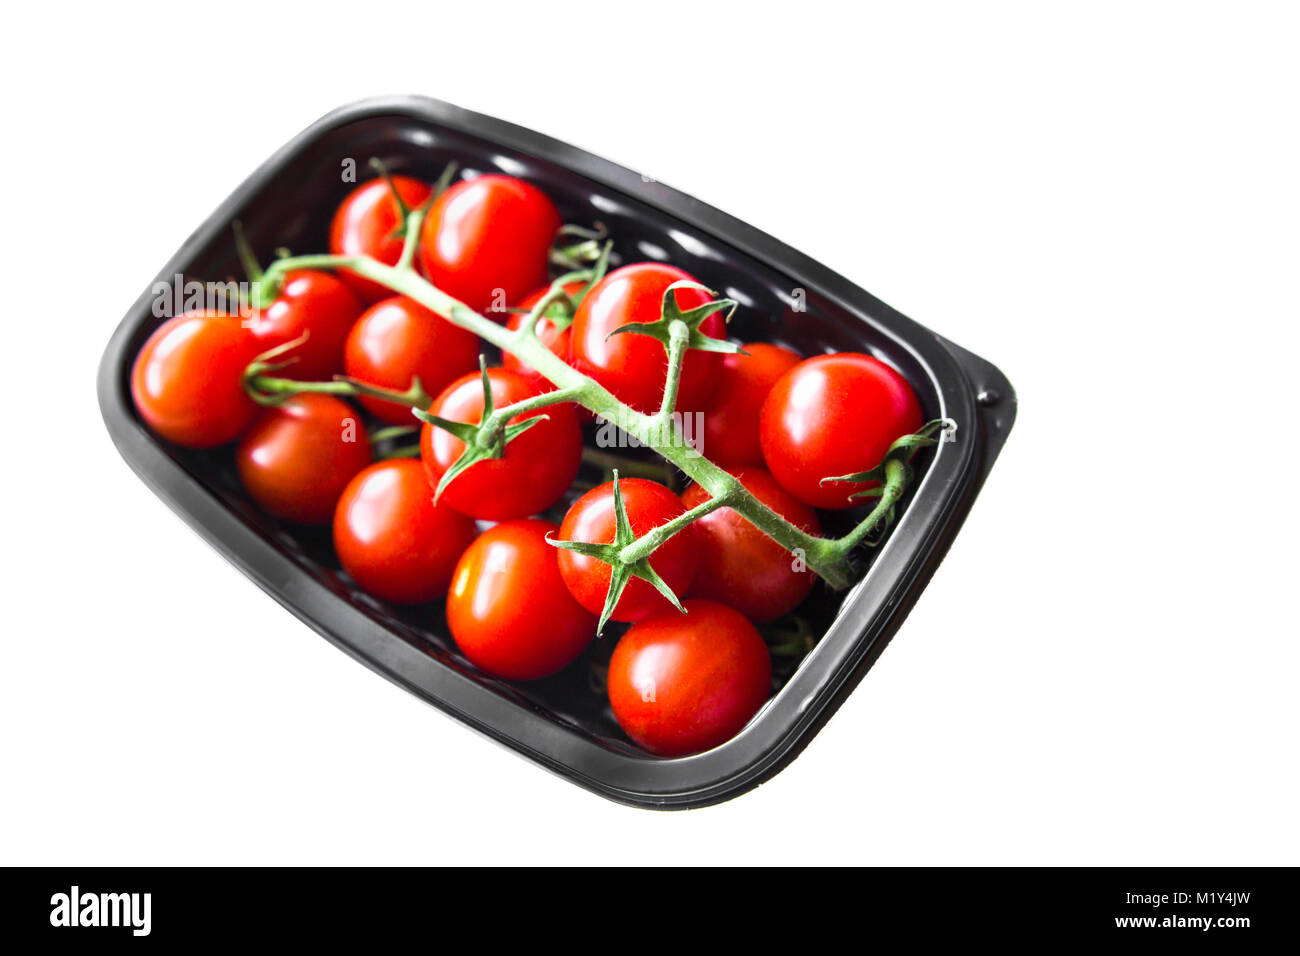 Ripe cherry tomatoes in plastic container against a white background - Stock Image